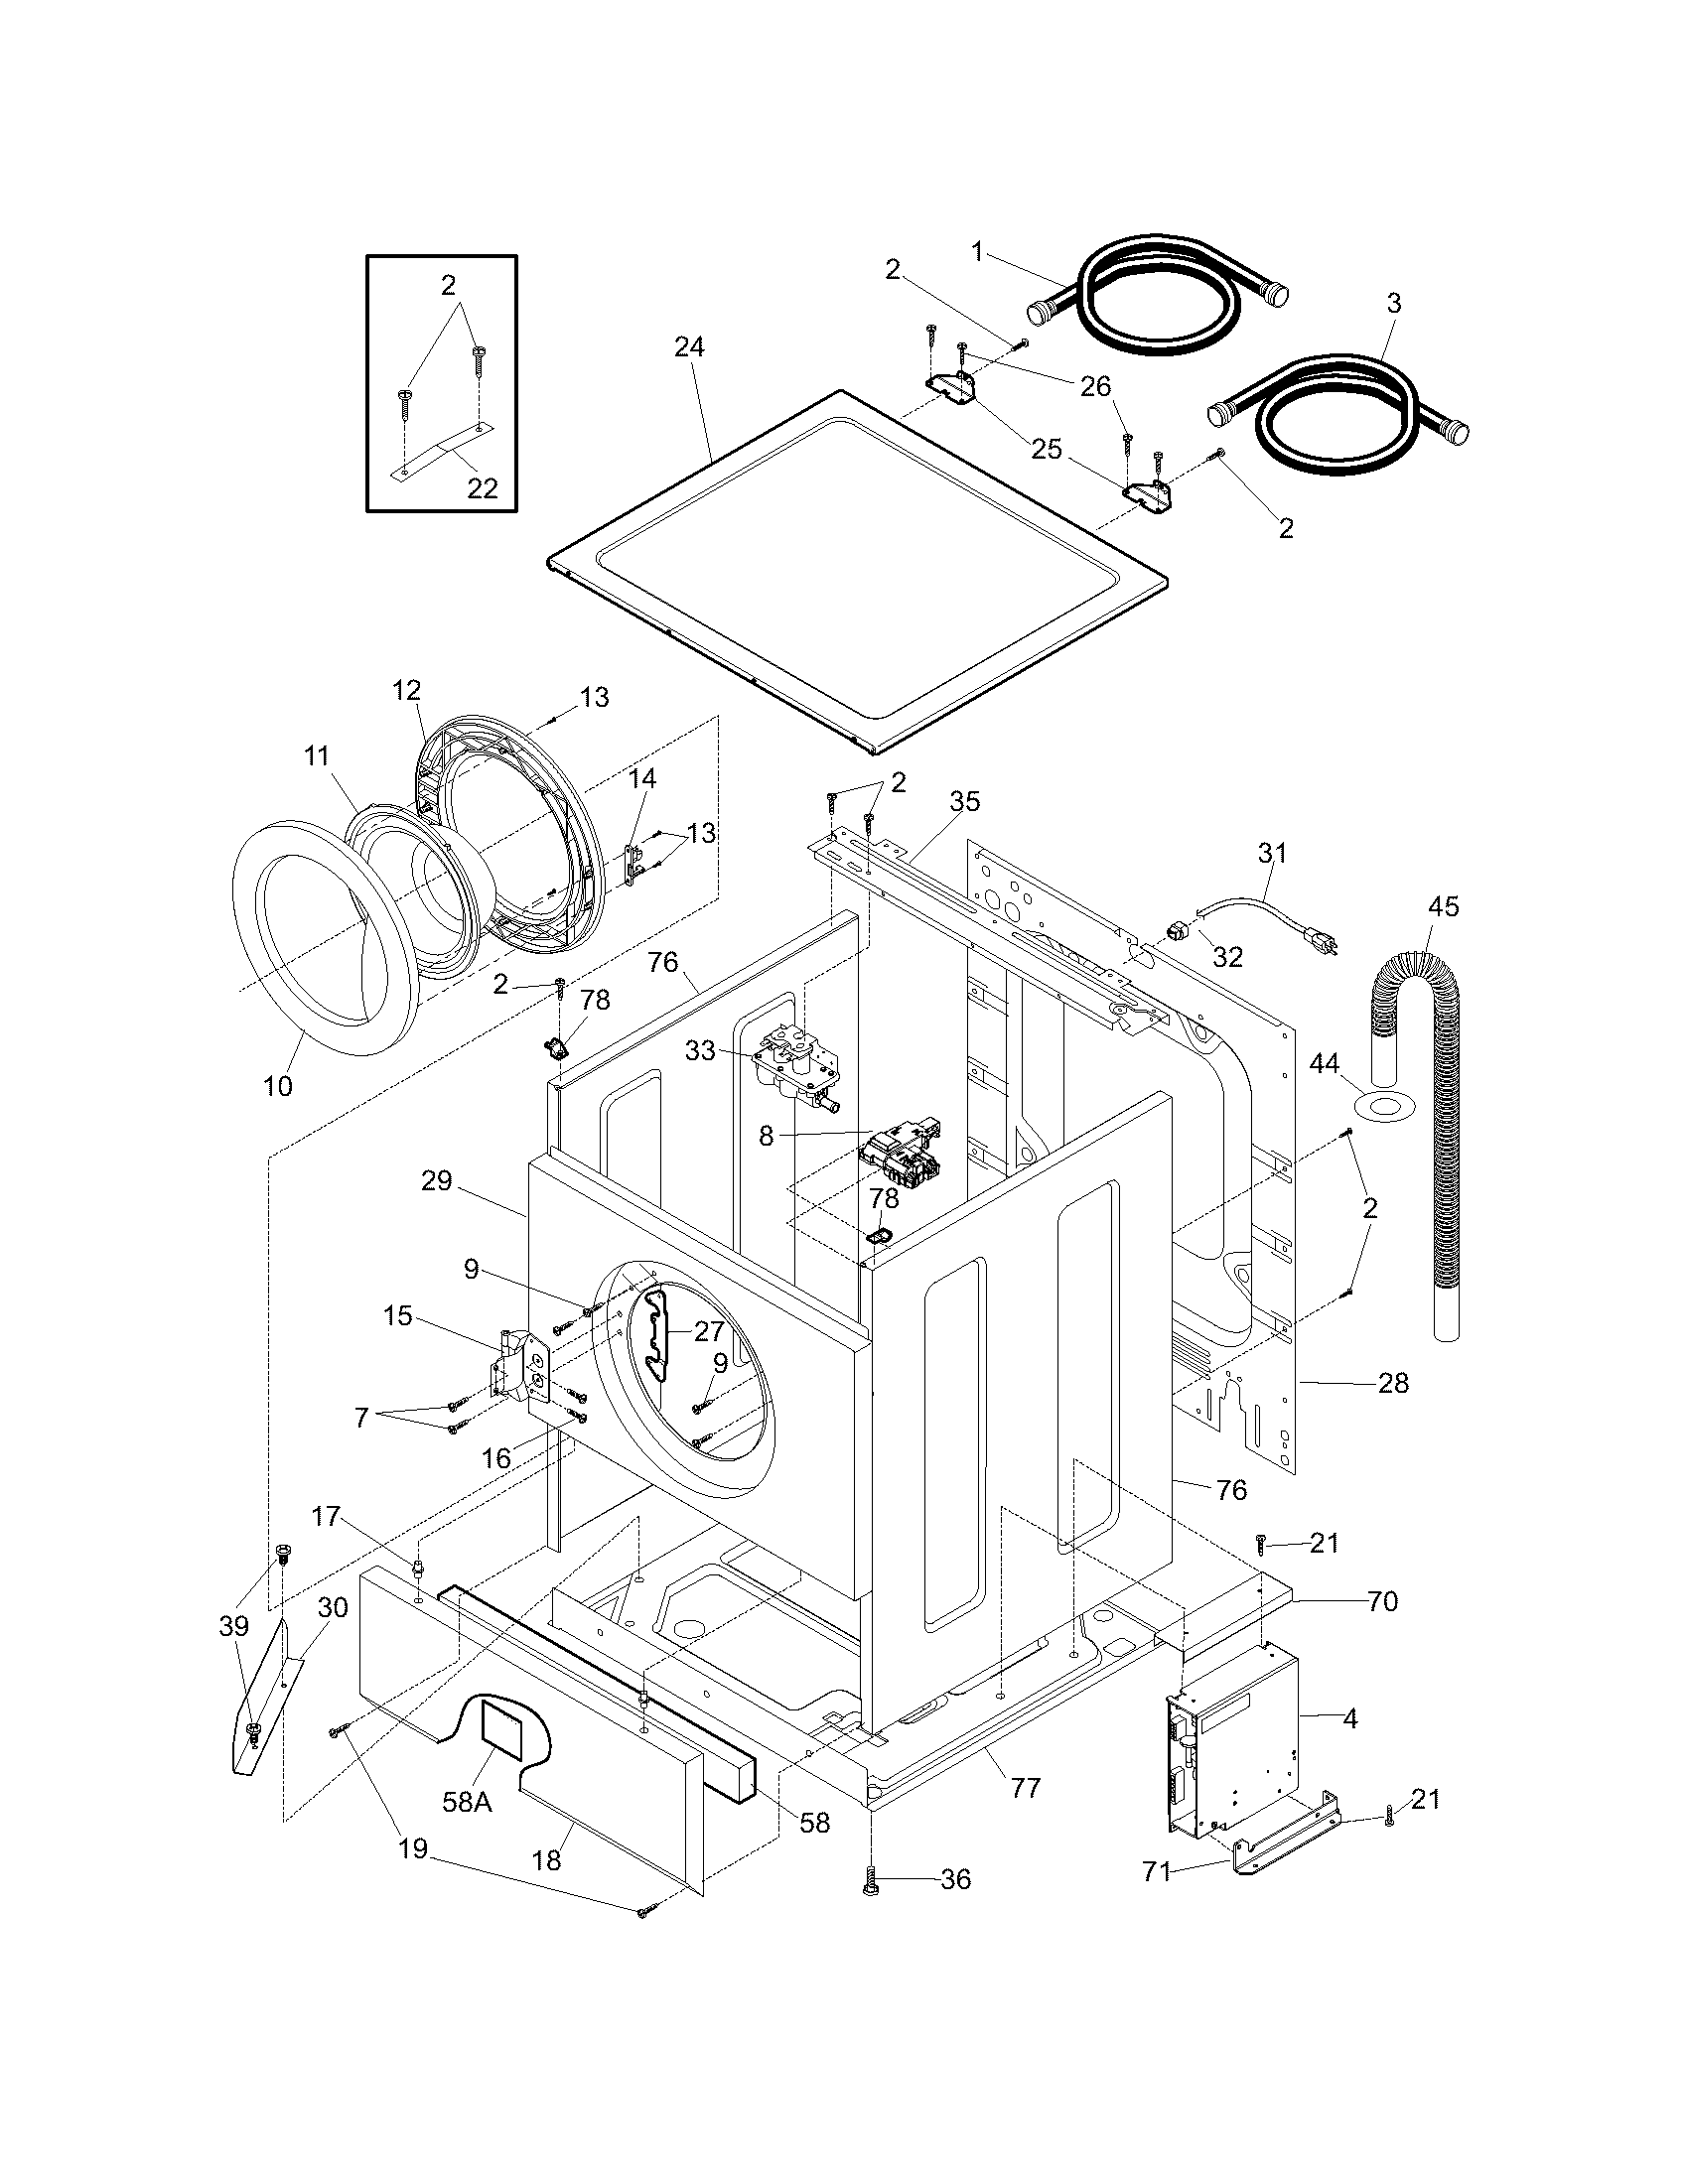 frigidaire front load washer parts diagram 1956 ford car wiring cabinet top model gltf2070ds0